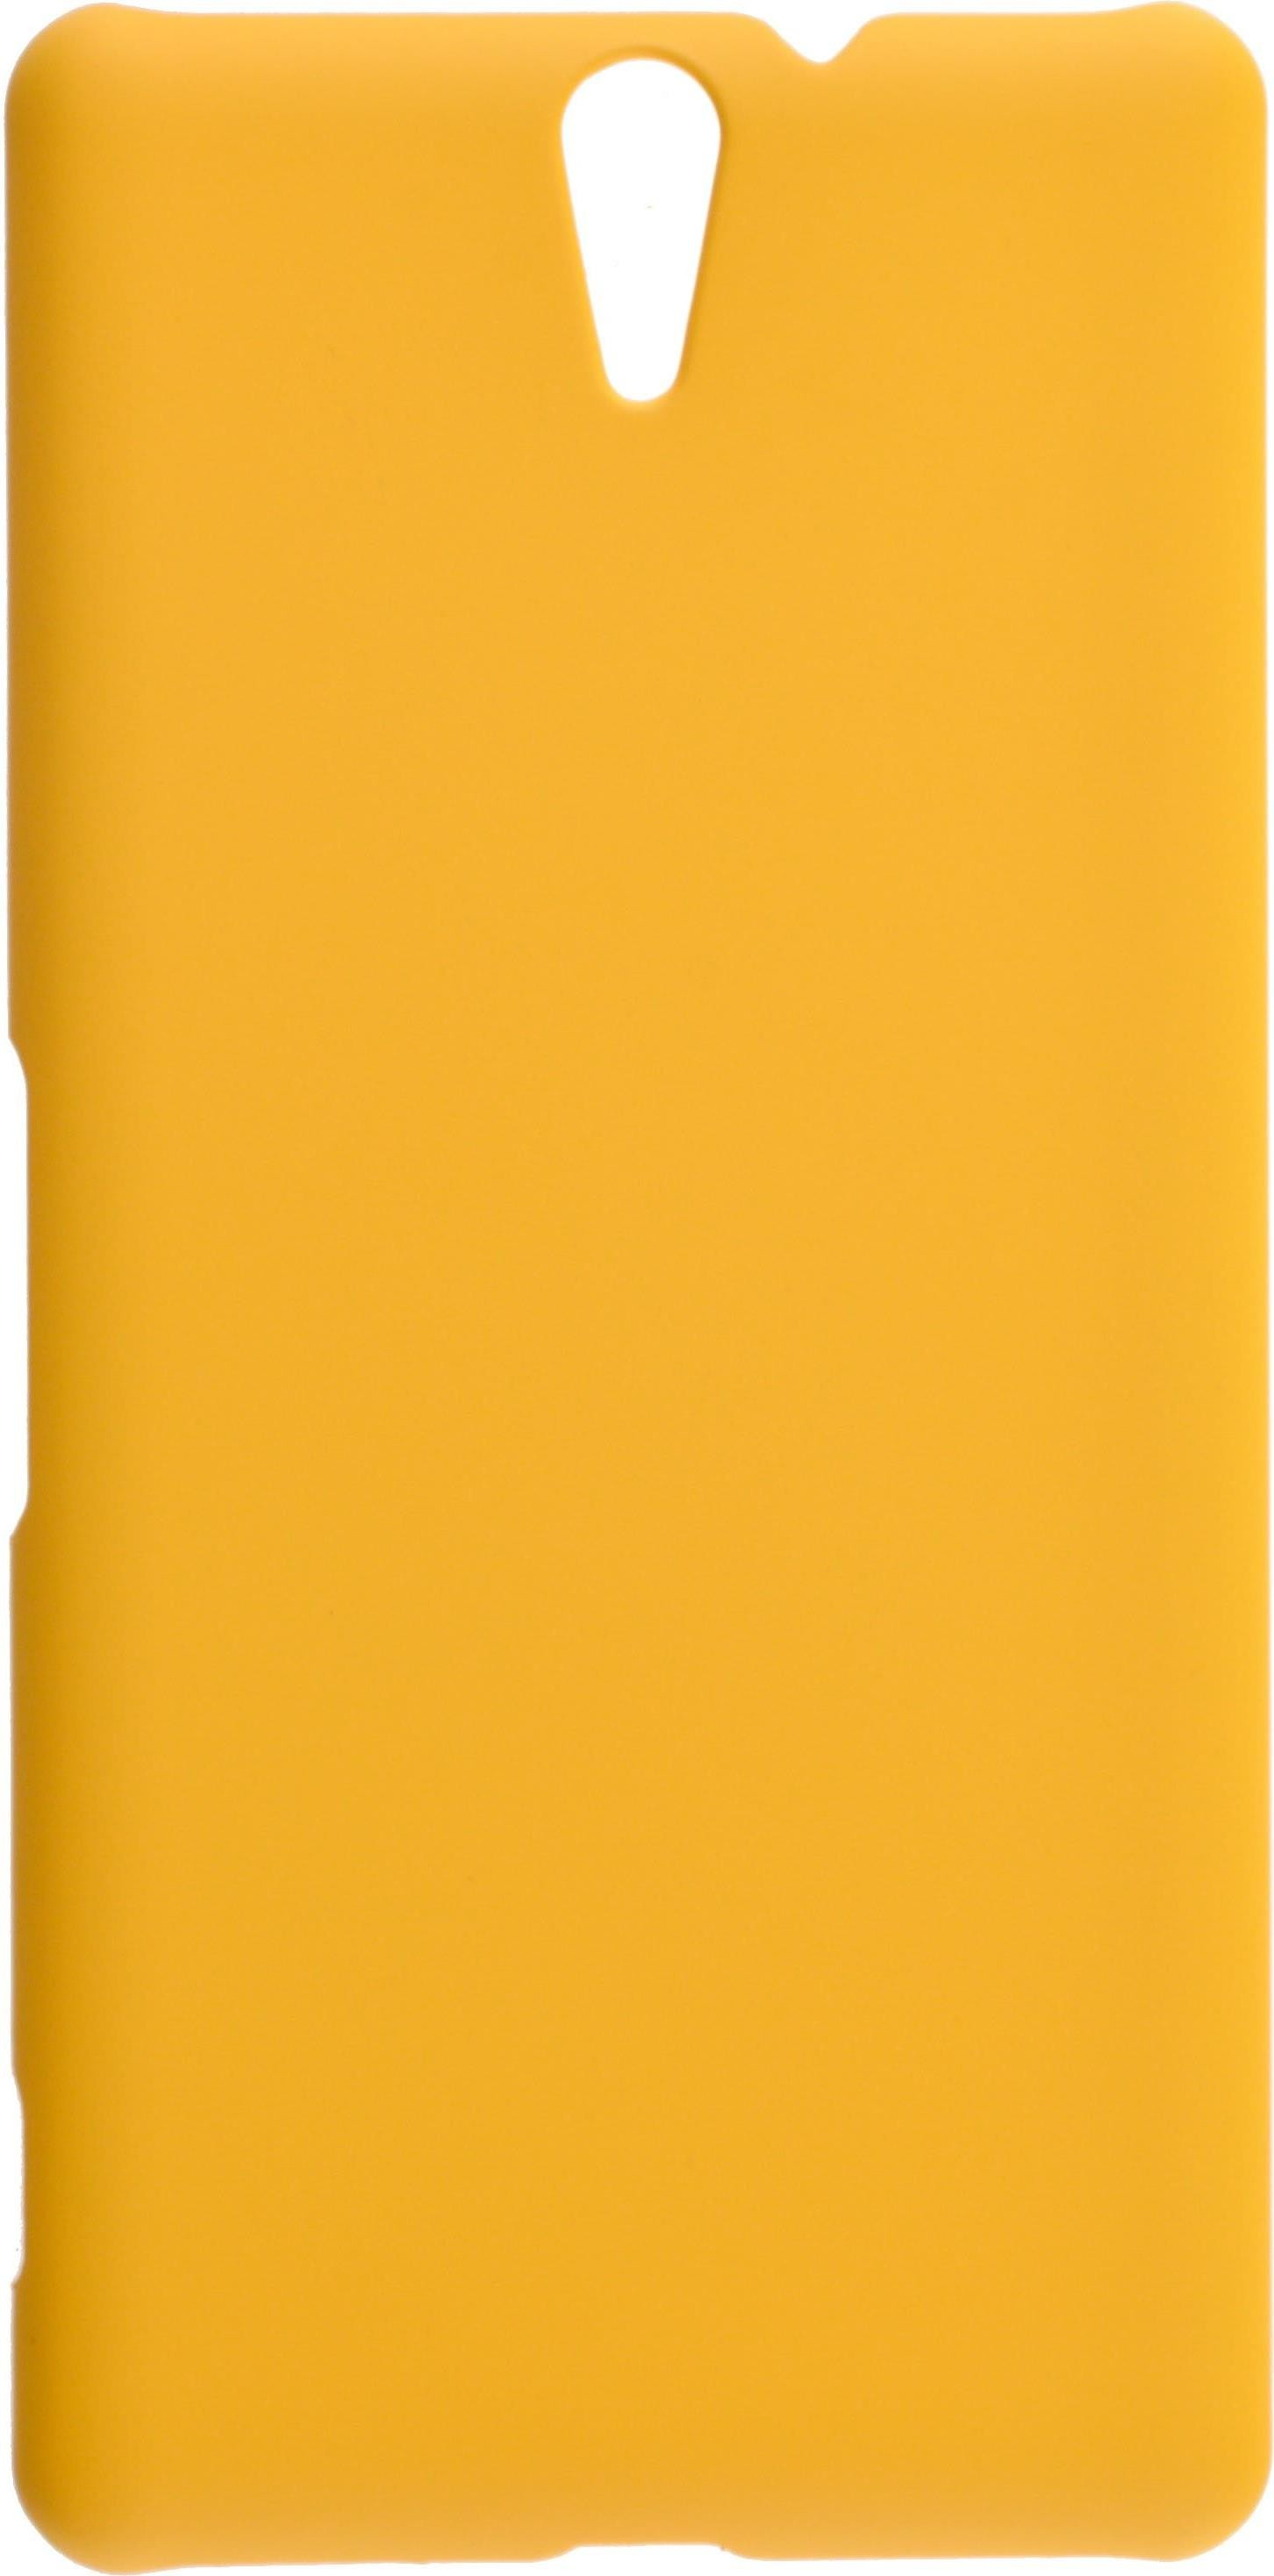 Накладка skinBOX для Sony Xperia C5 Ultra, 2000000082929, желтый skinbox 4people чехол для sony xperia c5 ultra yellow